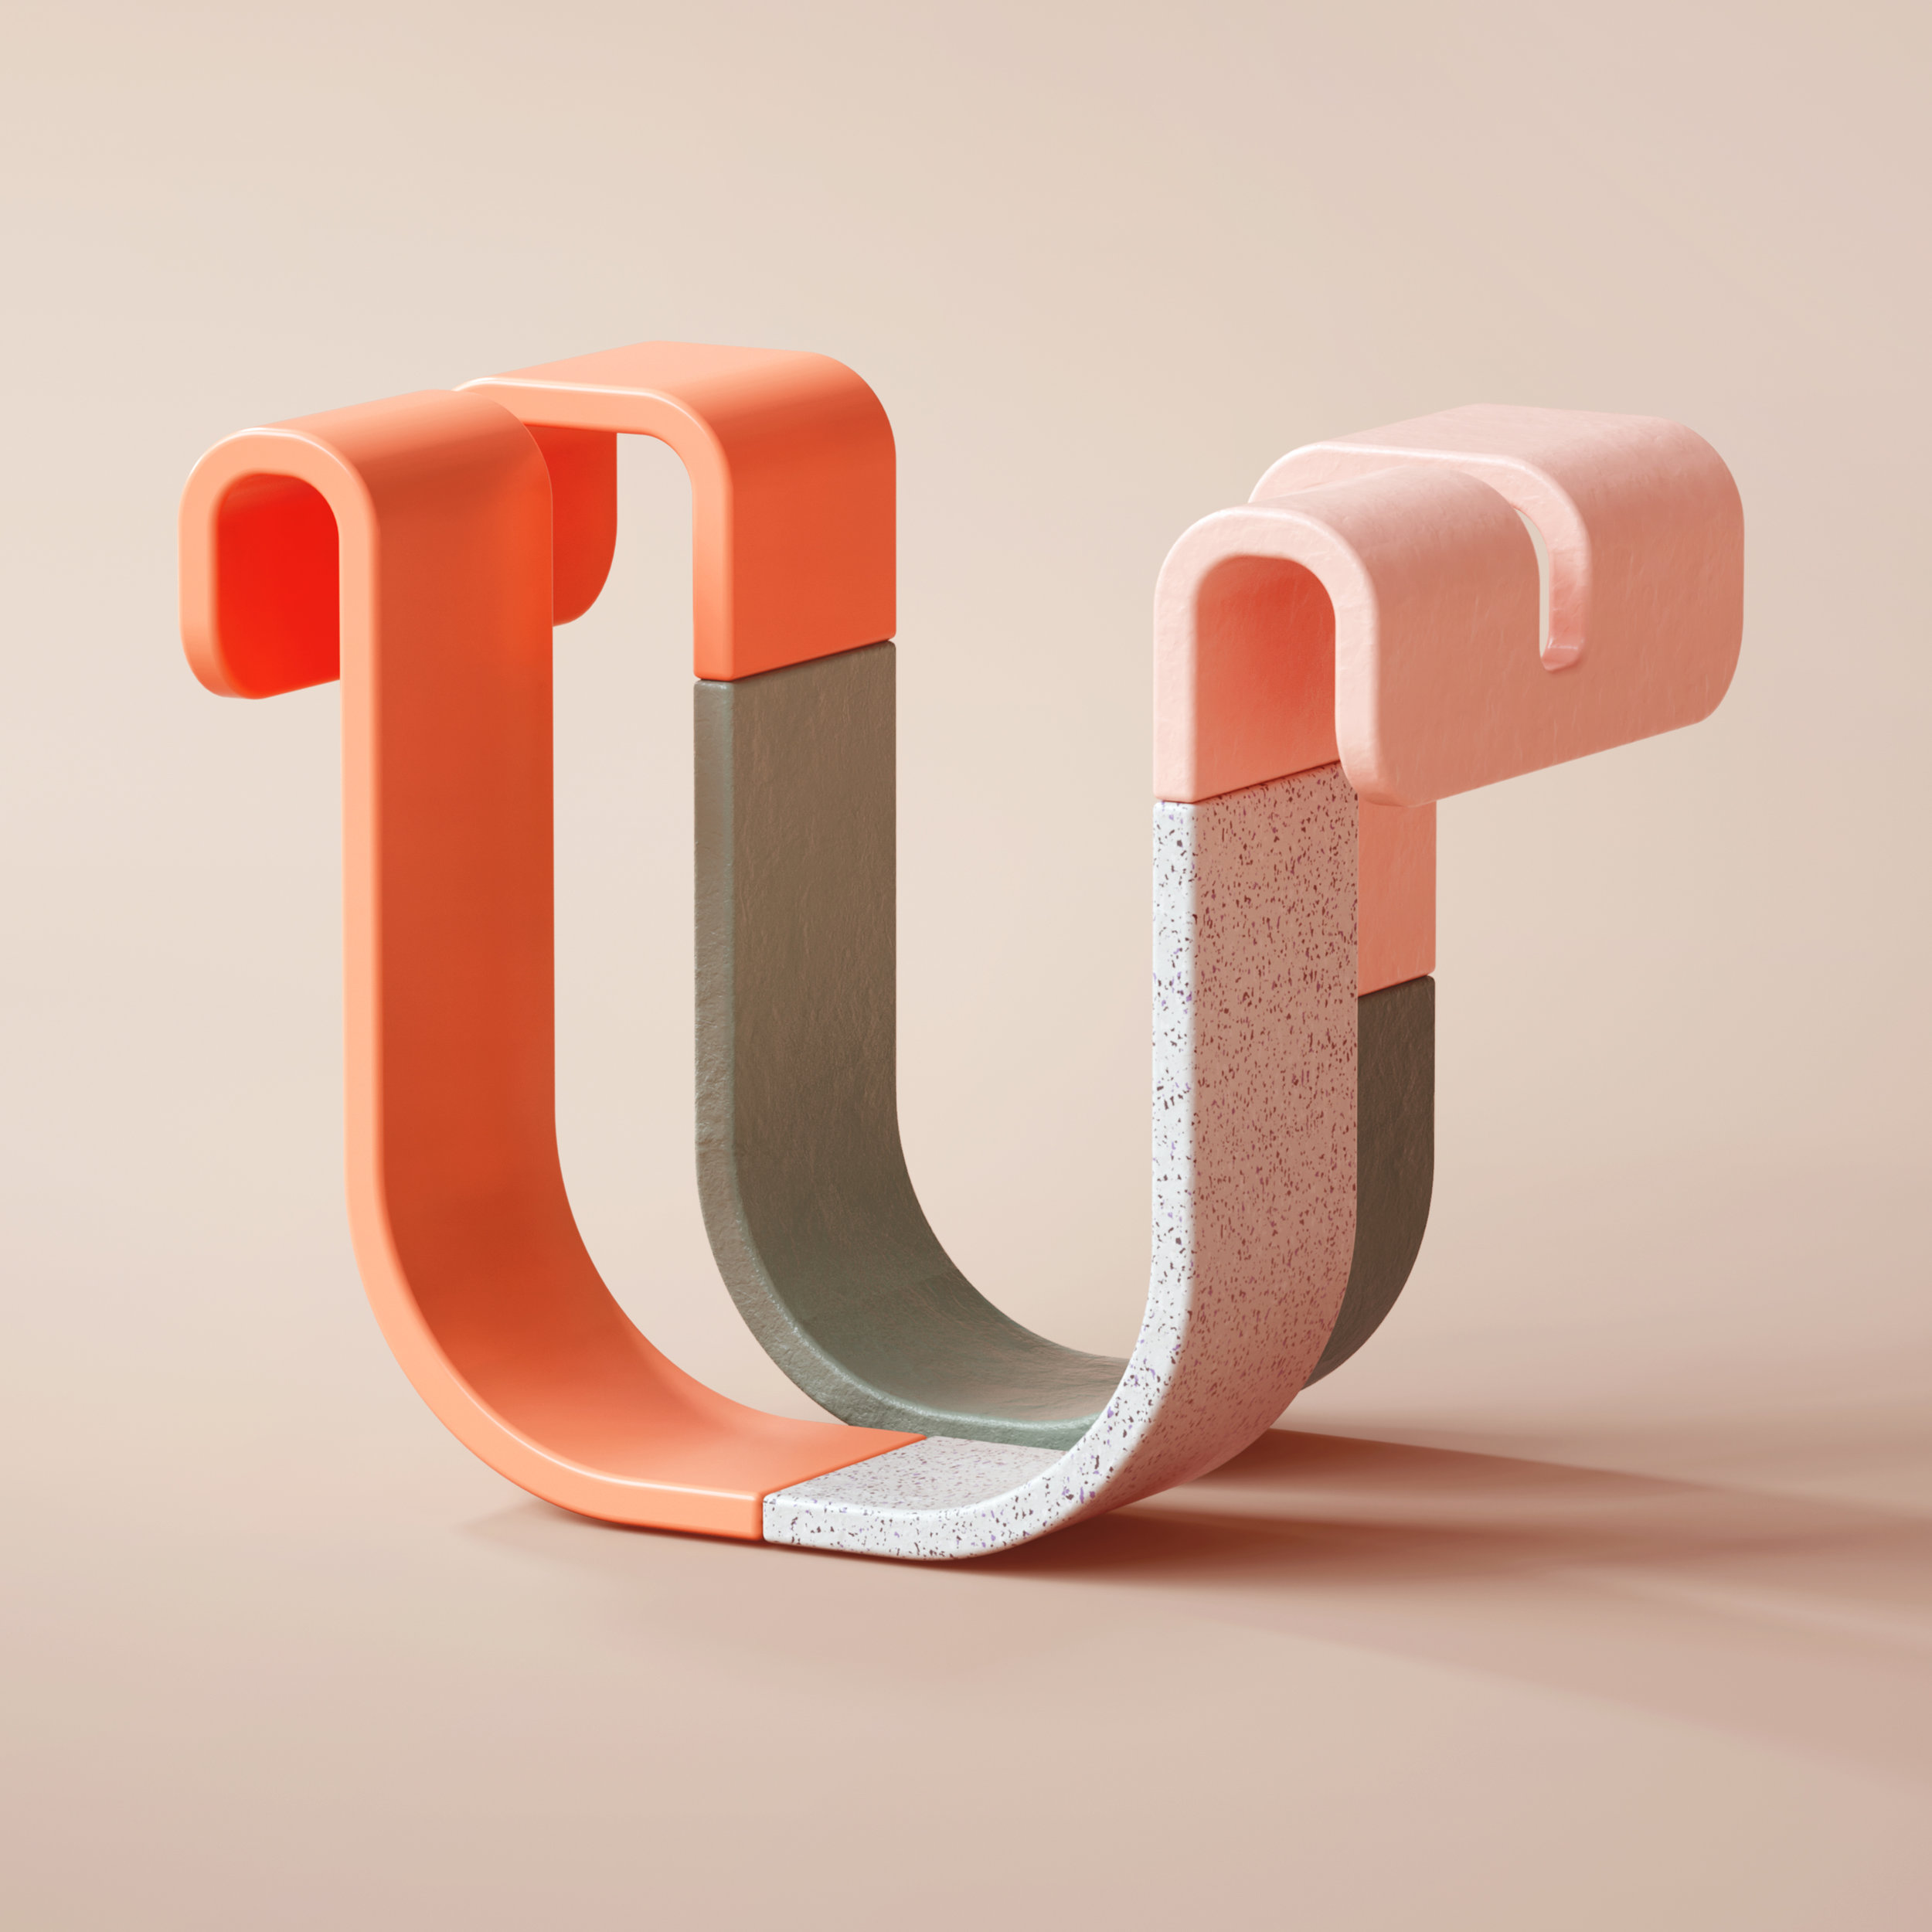 36 Days of Type 2019 - 3D Typeform letter U visual.